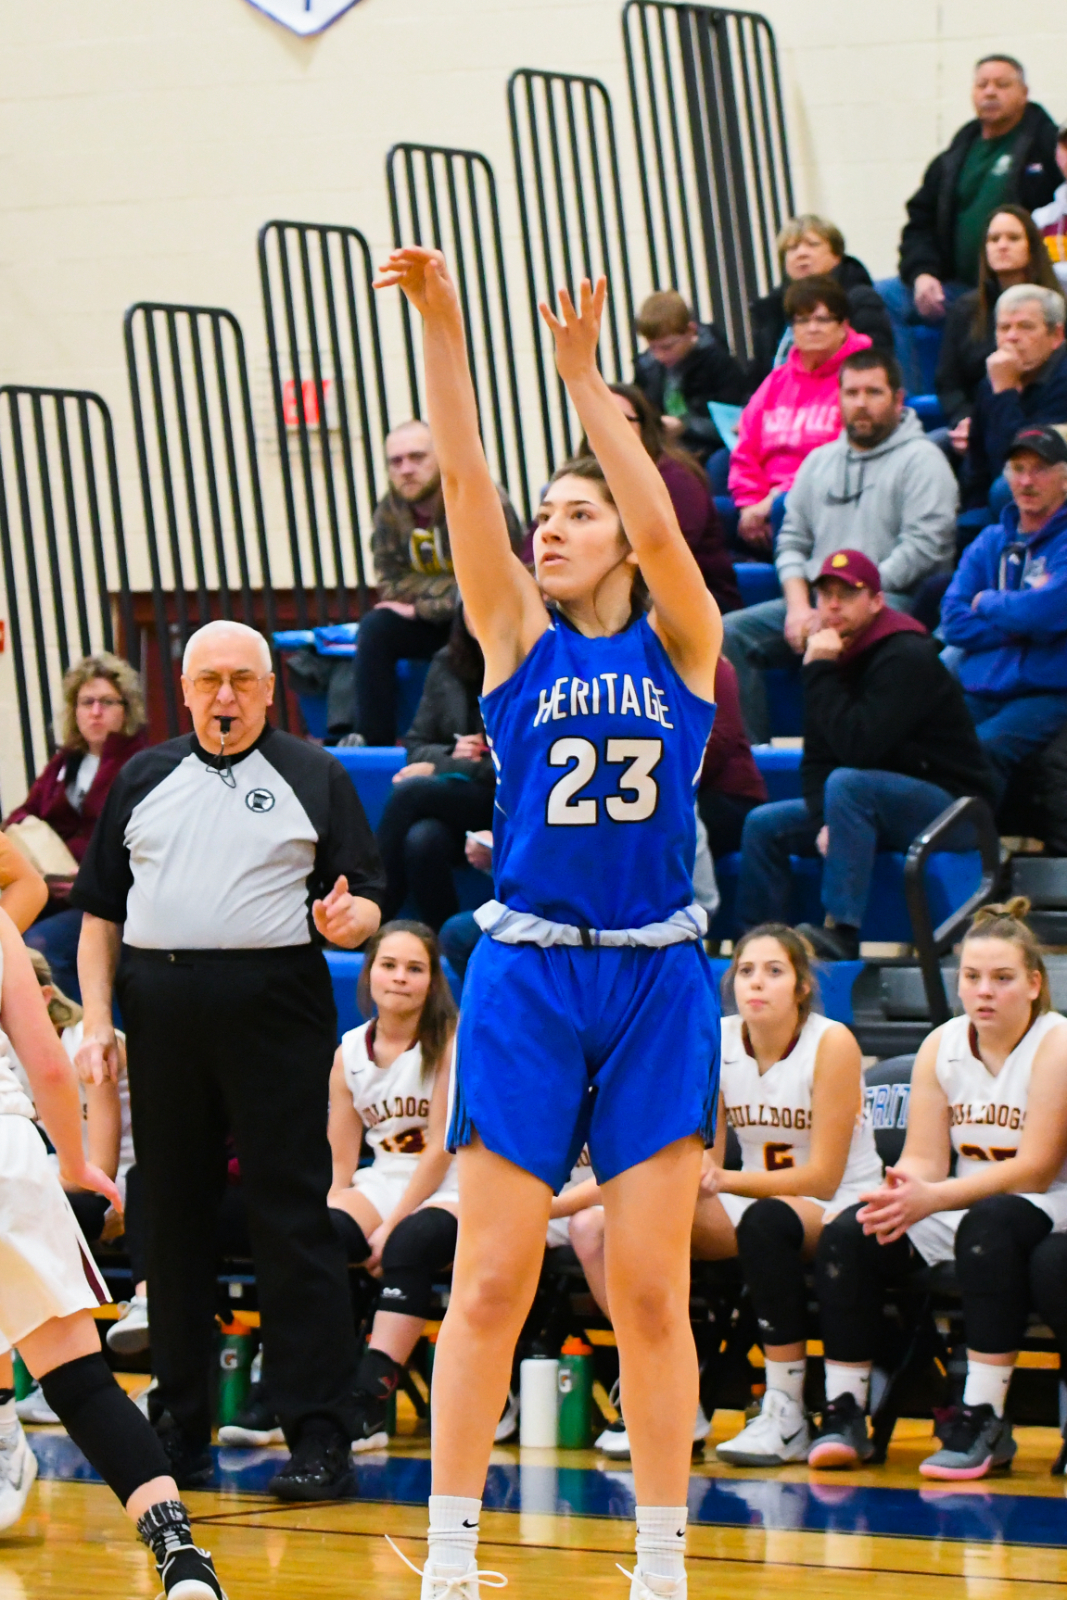 HCA girls hoops remained undefeated in conference play!